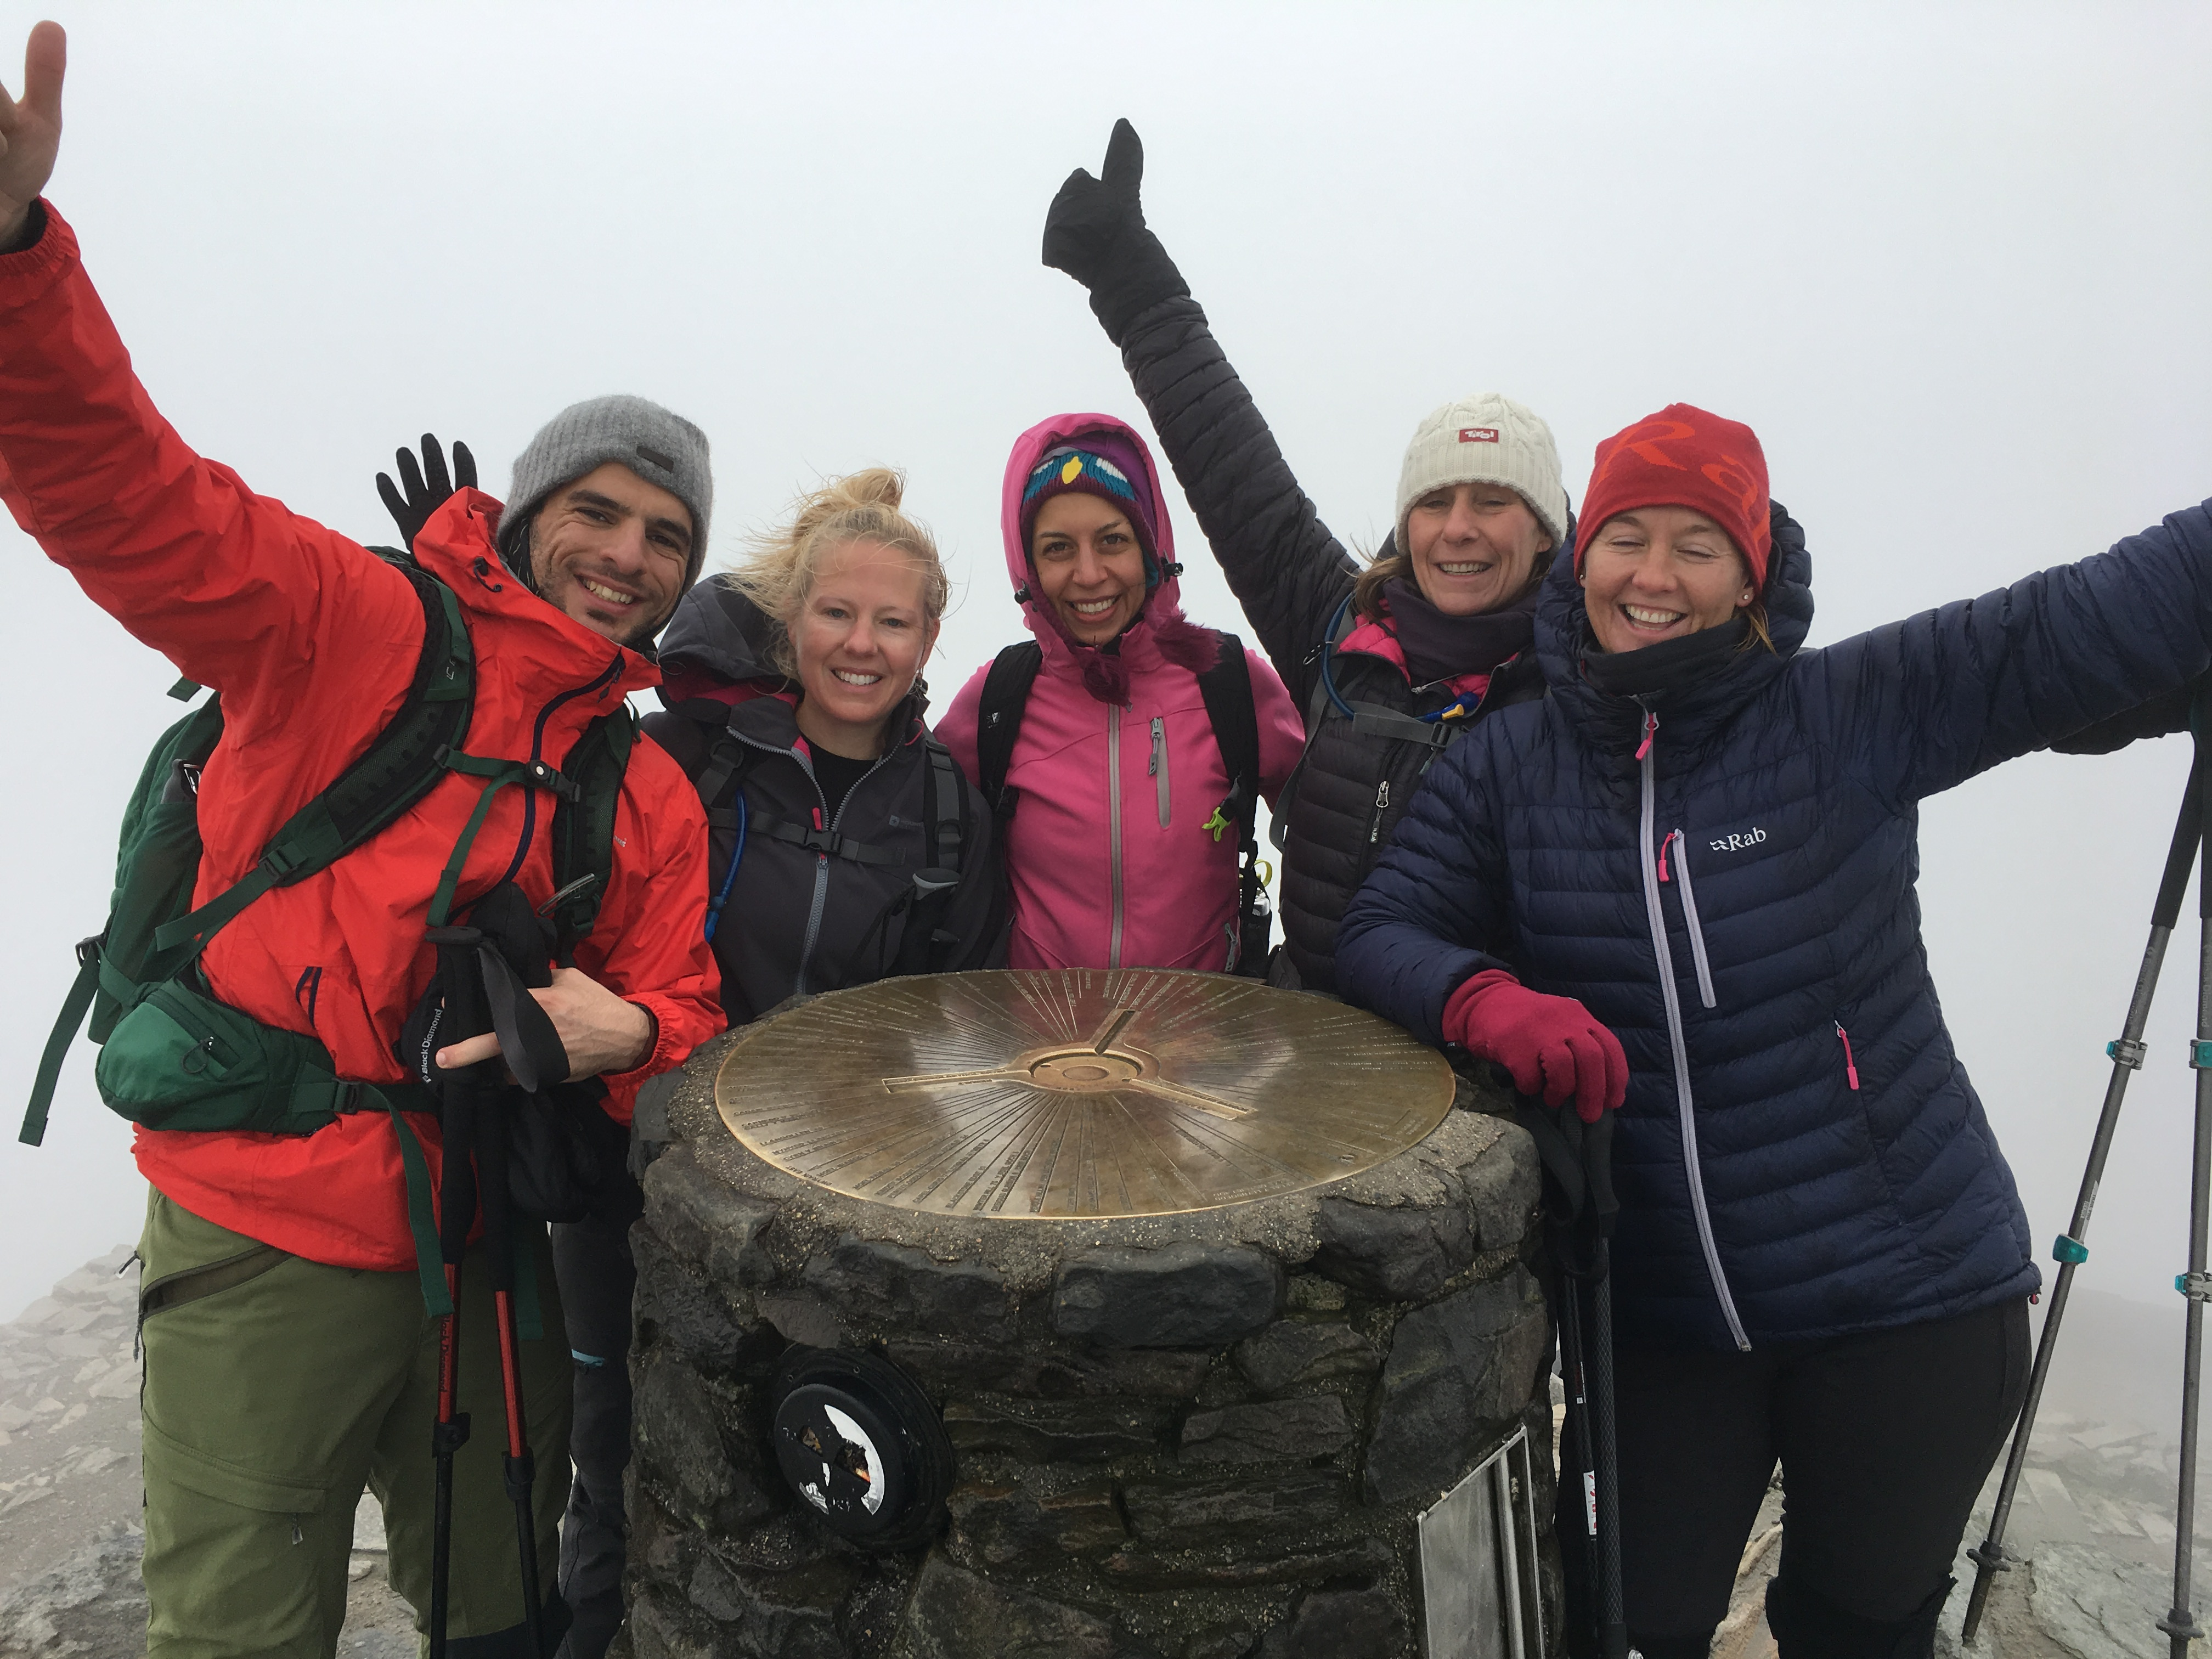 Hikers celebrate finishing the three peaks challeng